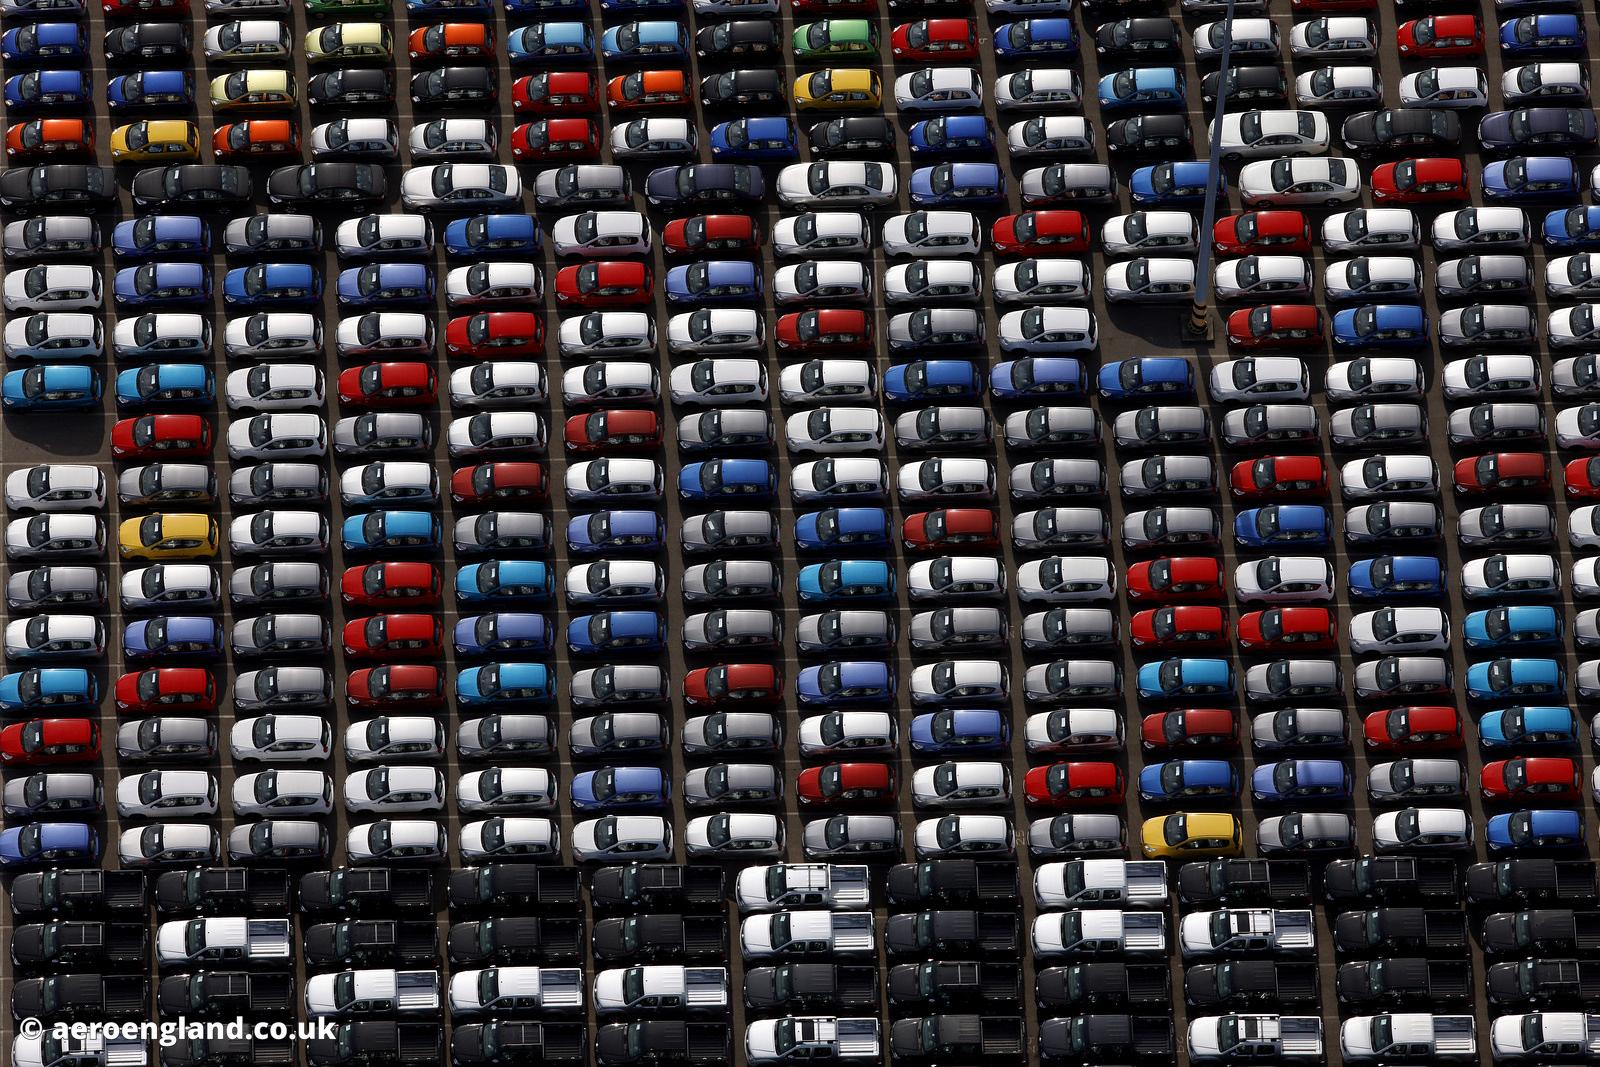 Vertical aerial photograph of cars lined up on decks for export / import